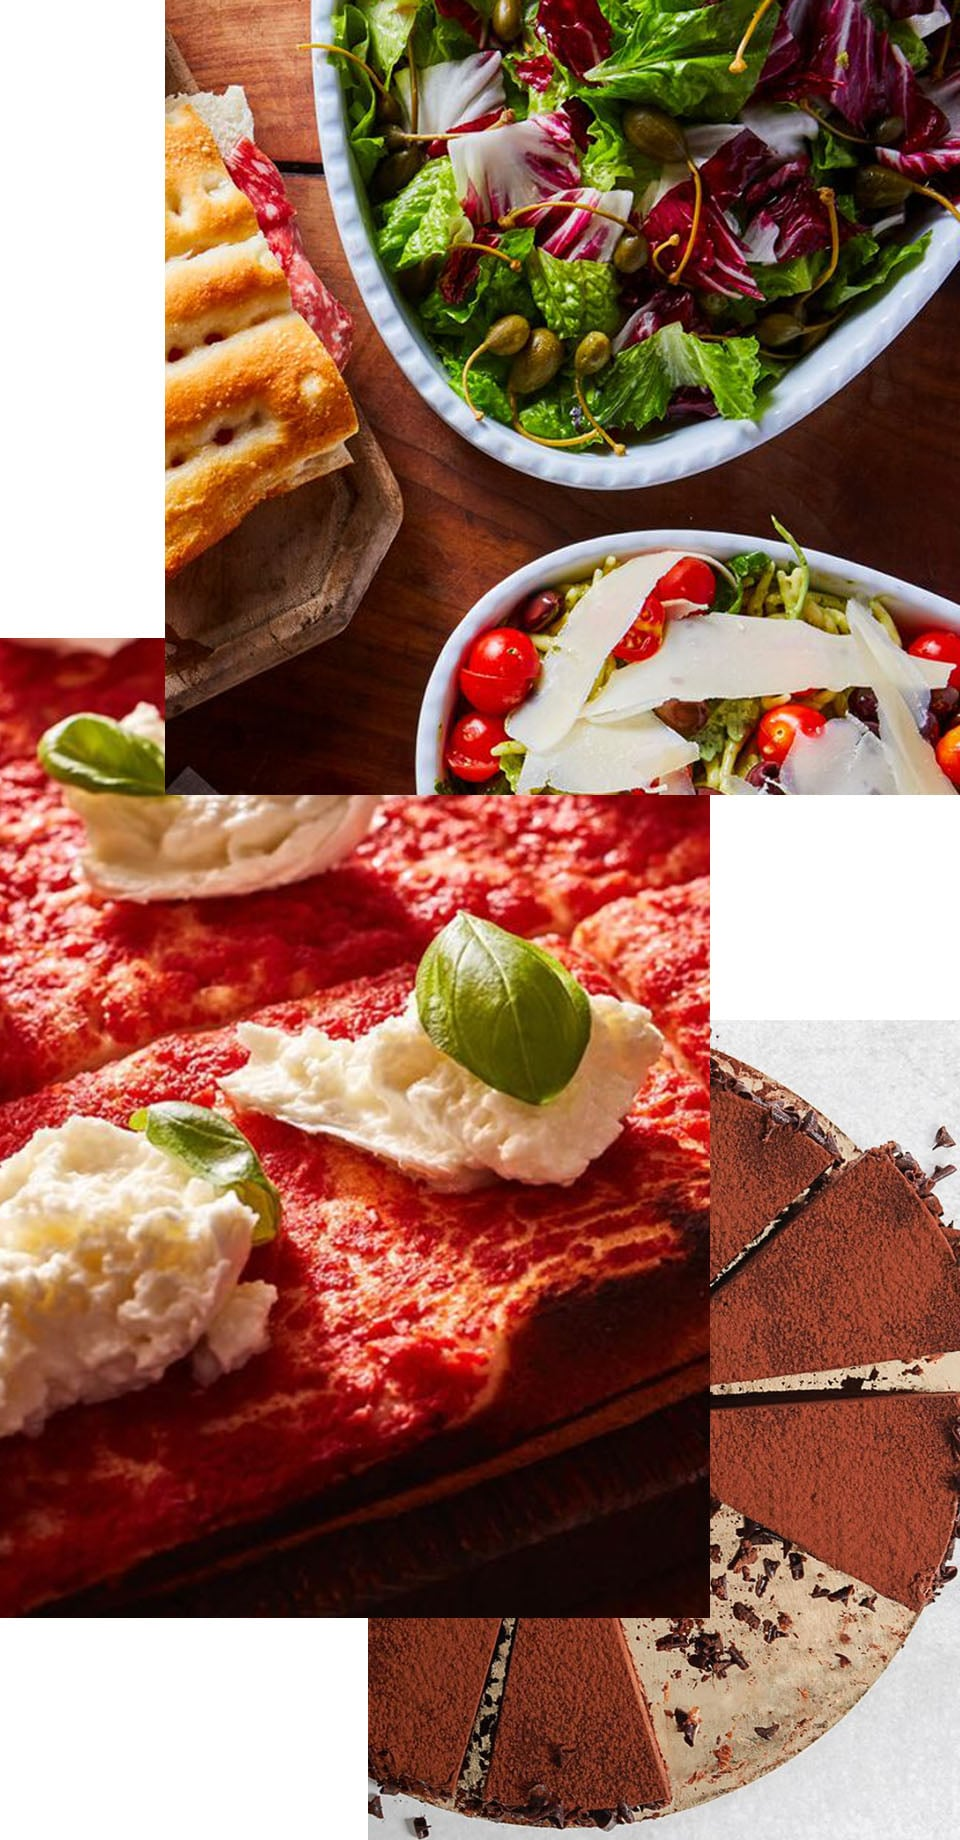 Image collage of a sandwich, salads, pizza, and dessert